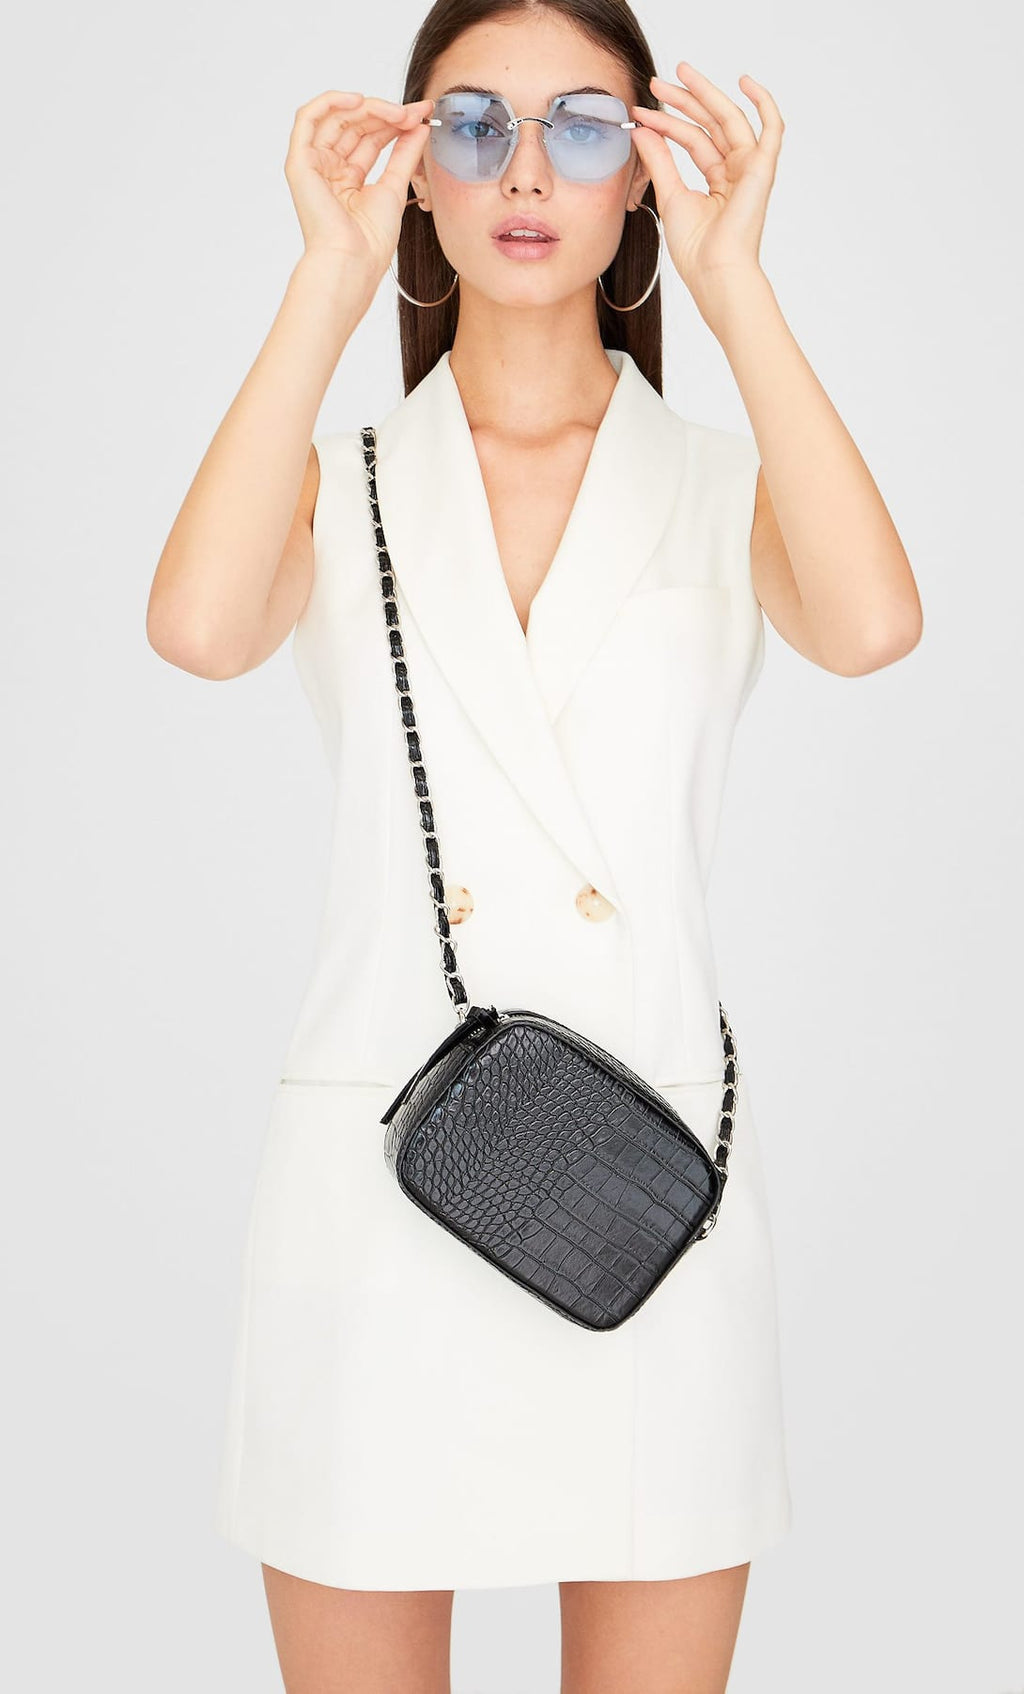 STRADIVARIUS MOCK CROC CROSSBODY BAG IN BLACK